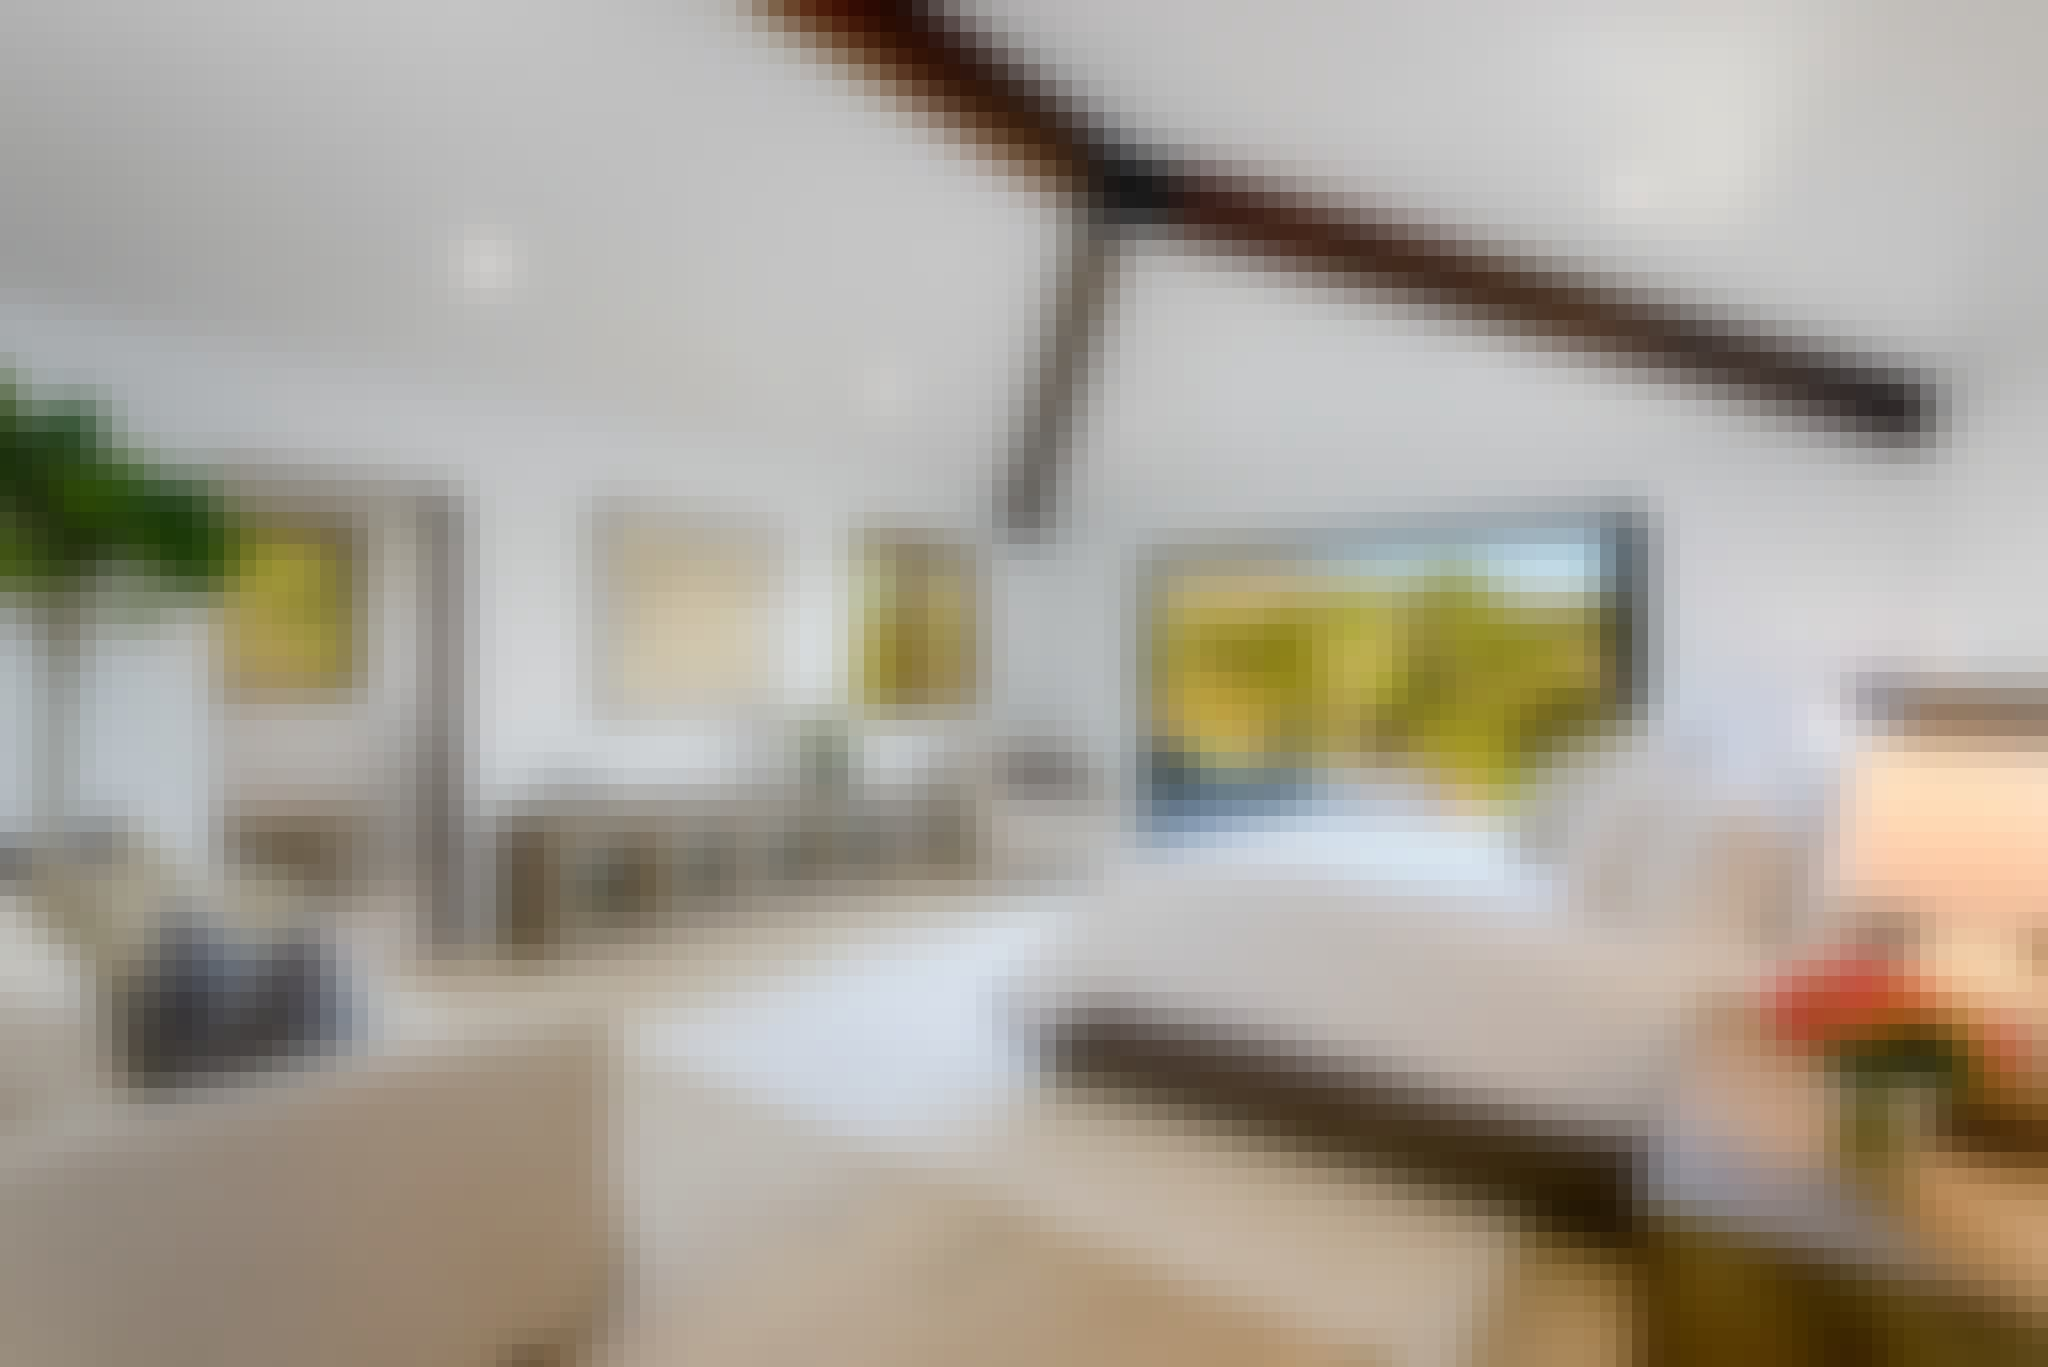 exterior glass wall systems in bedrooms